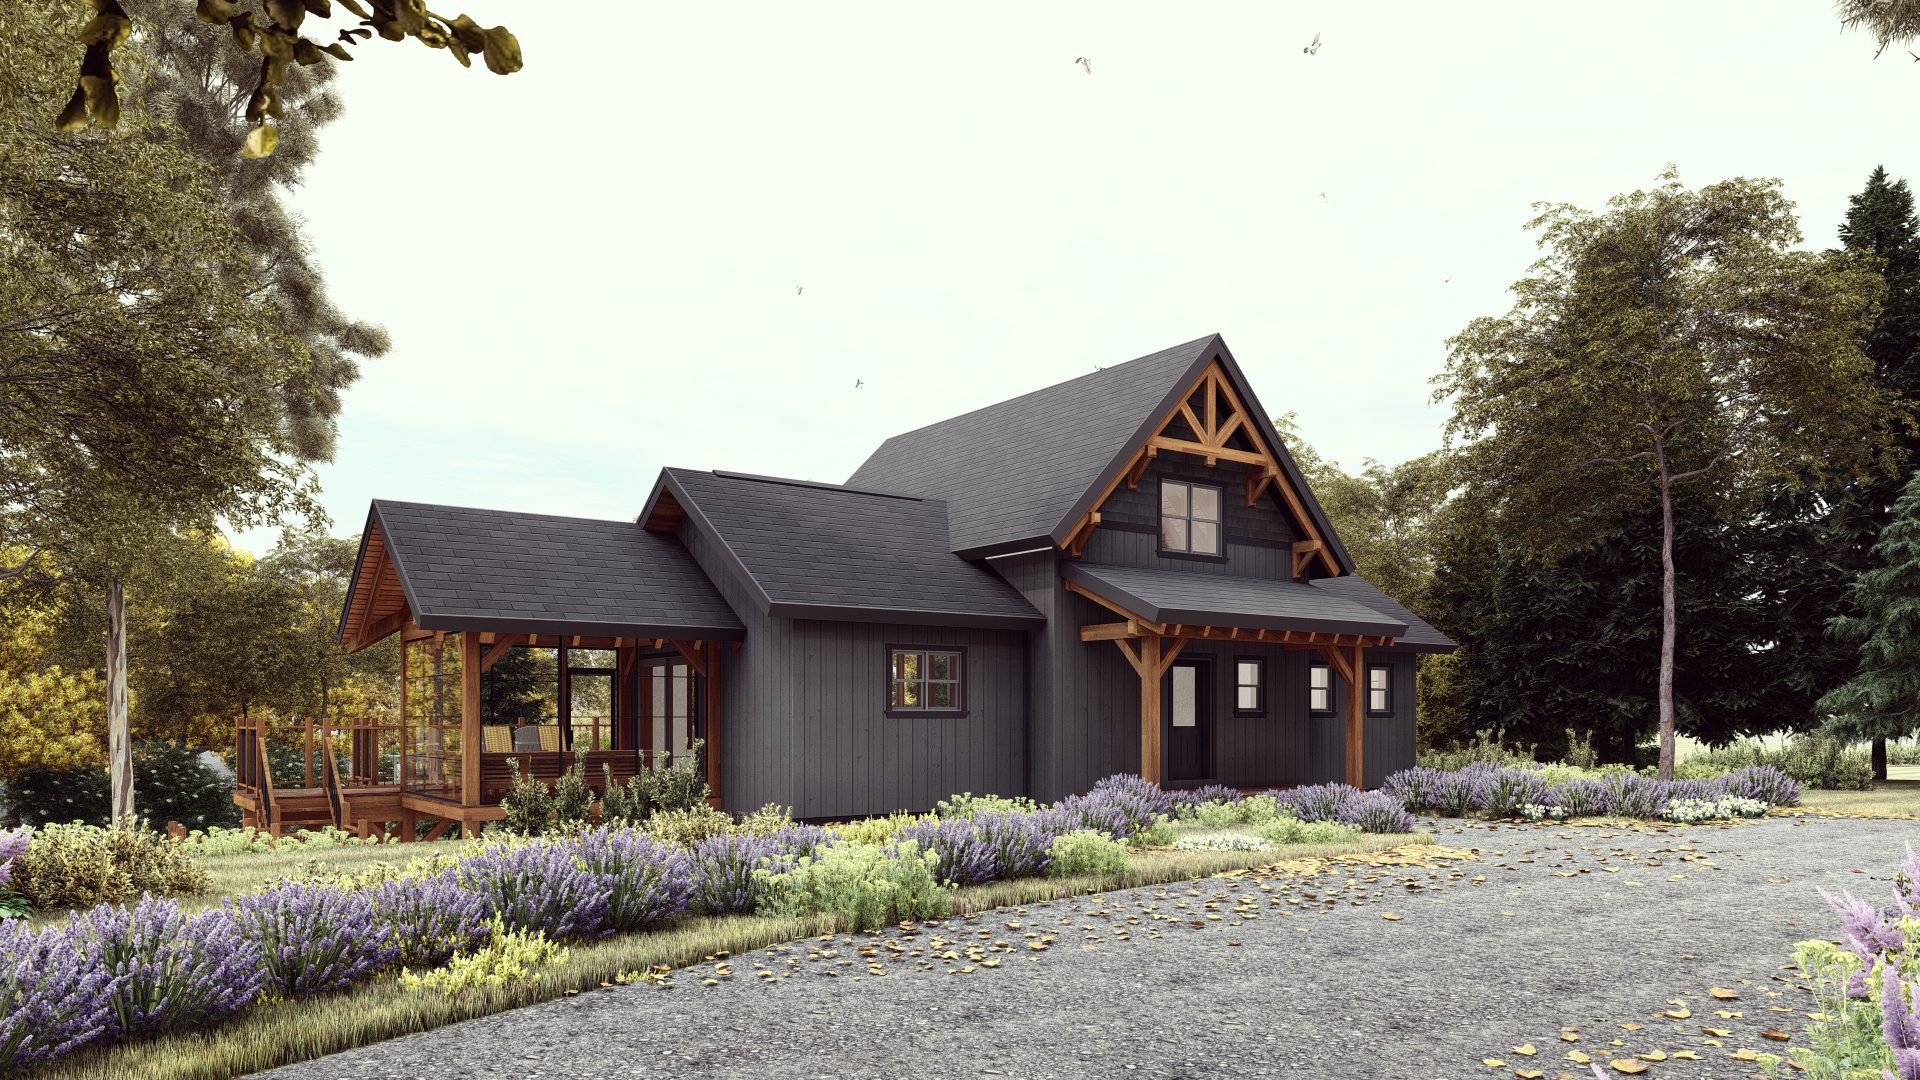 Normerica Timber Frames, House Plans, The Tobermory 3949, Exterior, Front